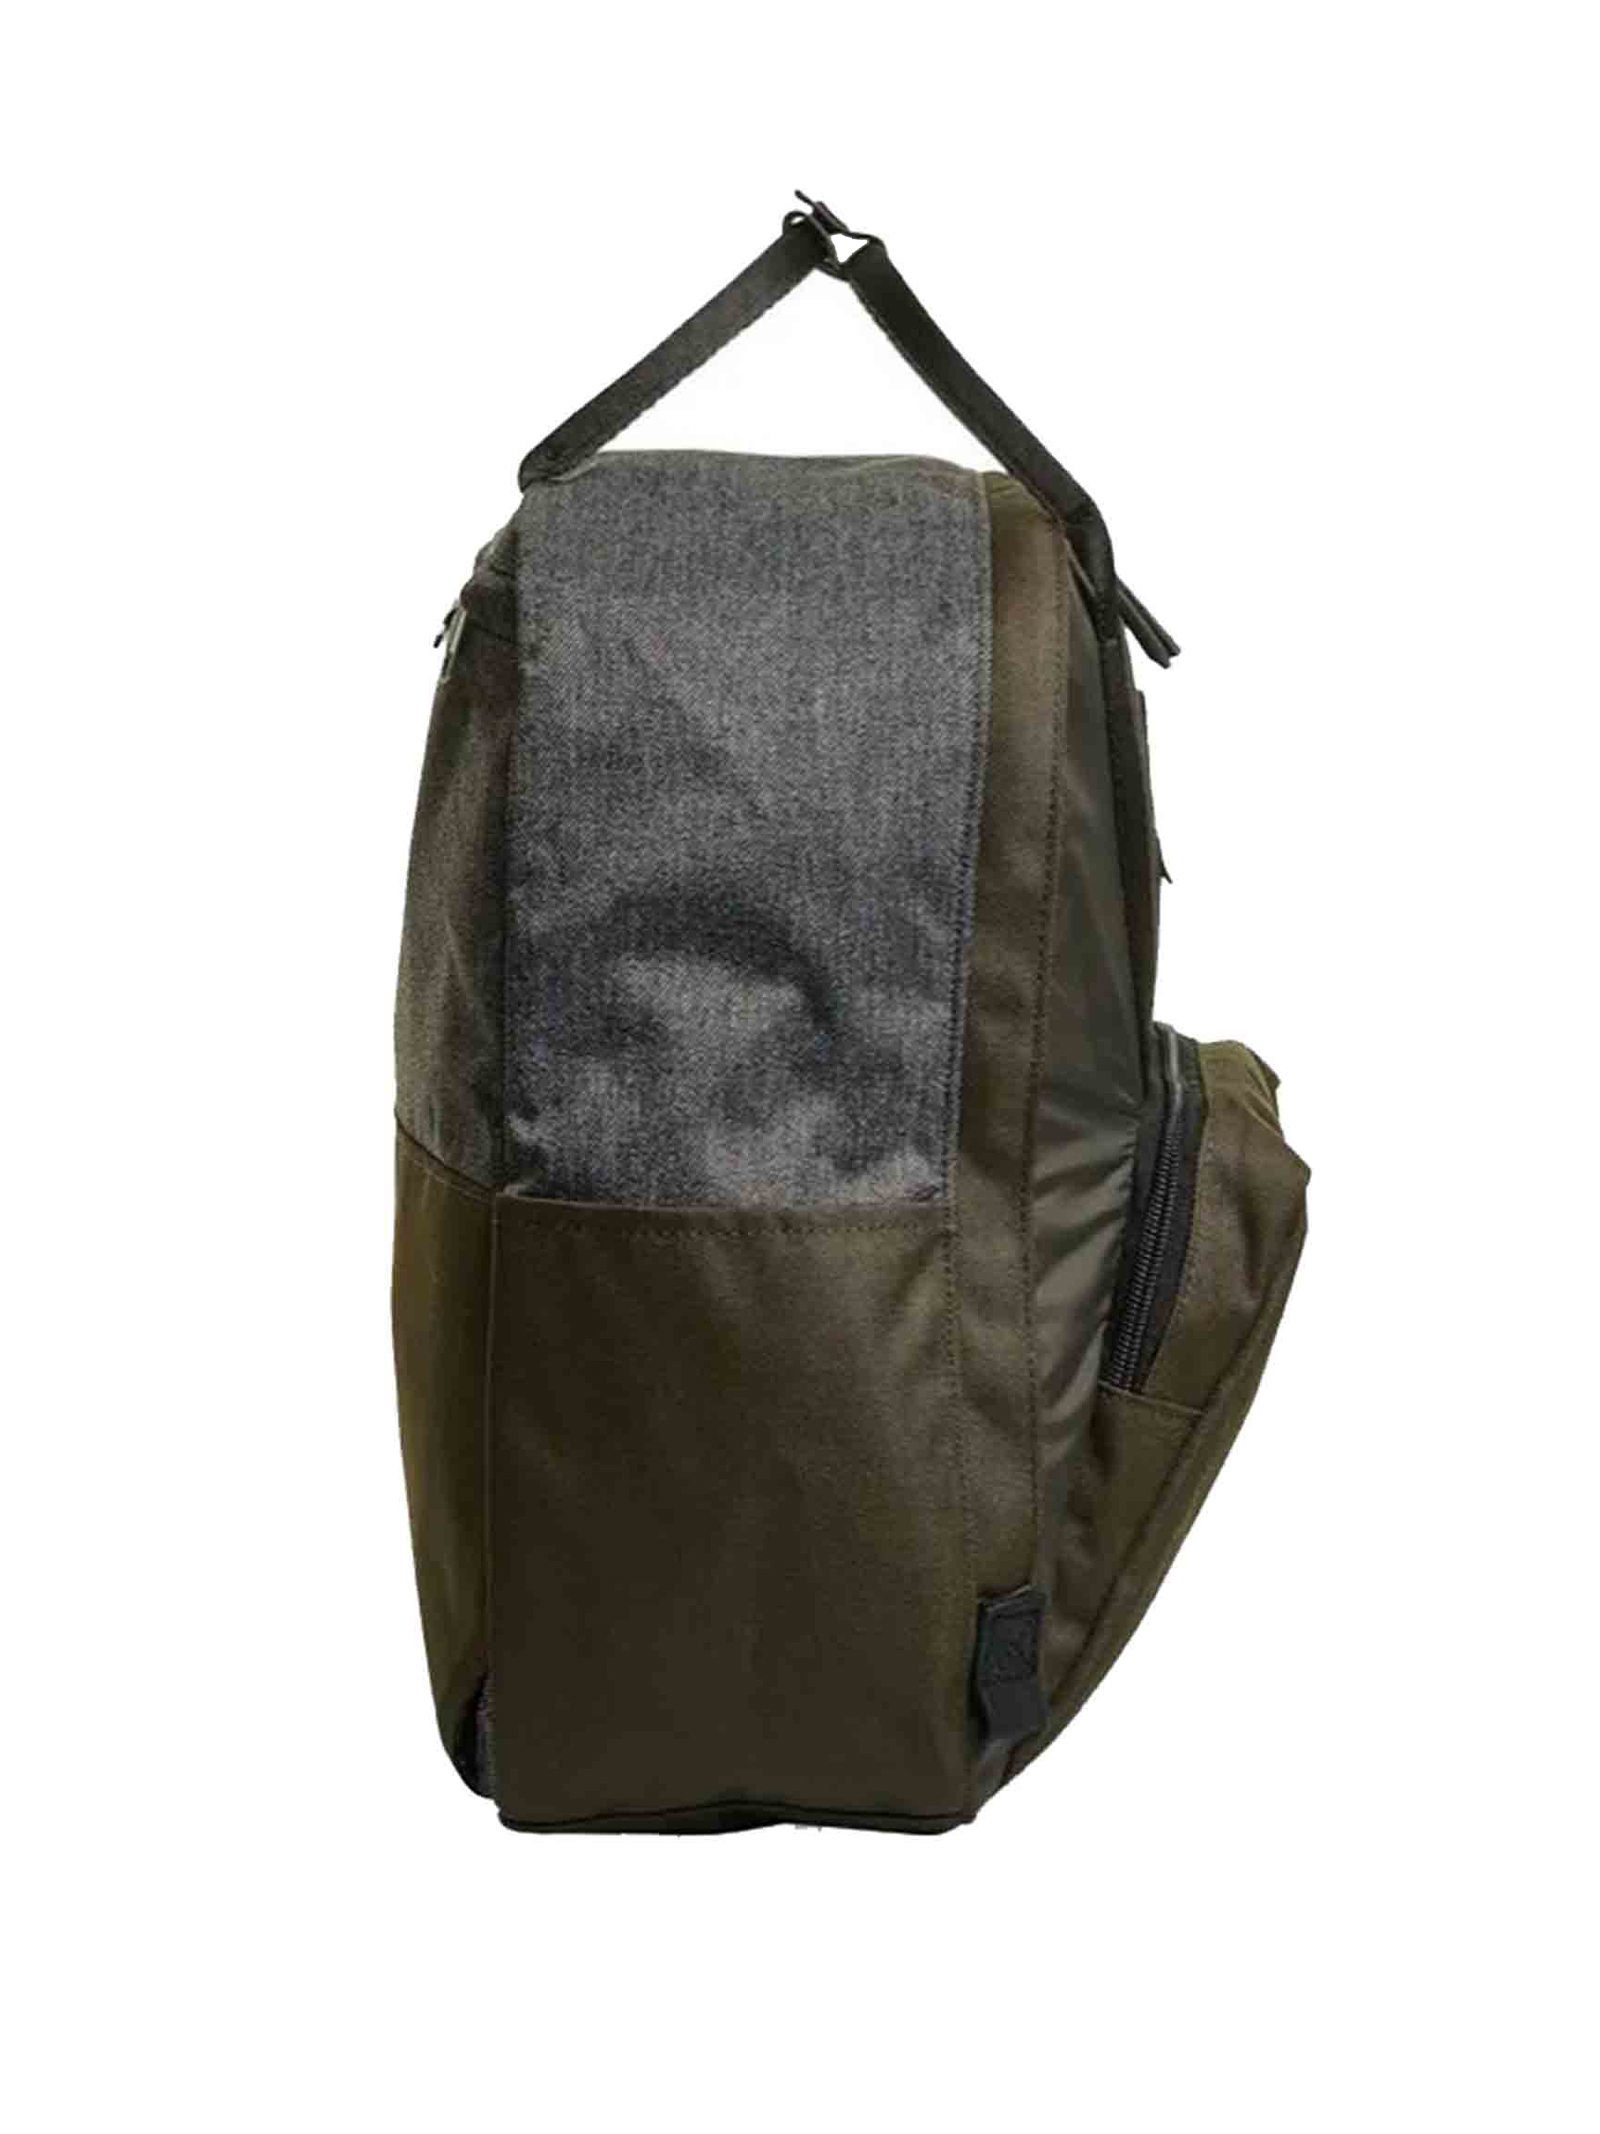 Unisex Icon Collection Shylla Army Green Monochrome Backpack with Padded Back and Shoulder Straps 206002115 Invicta | Bags and backpacks | SHYLLA PREMIUM666